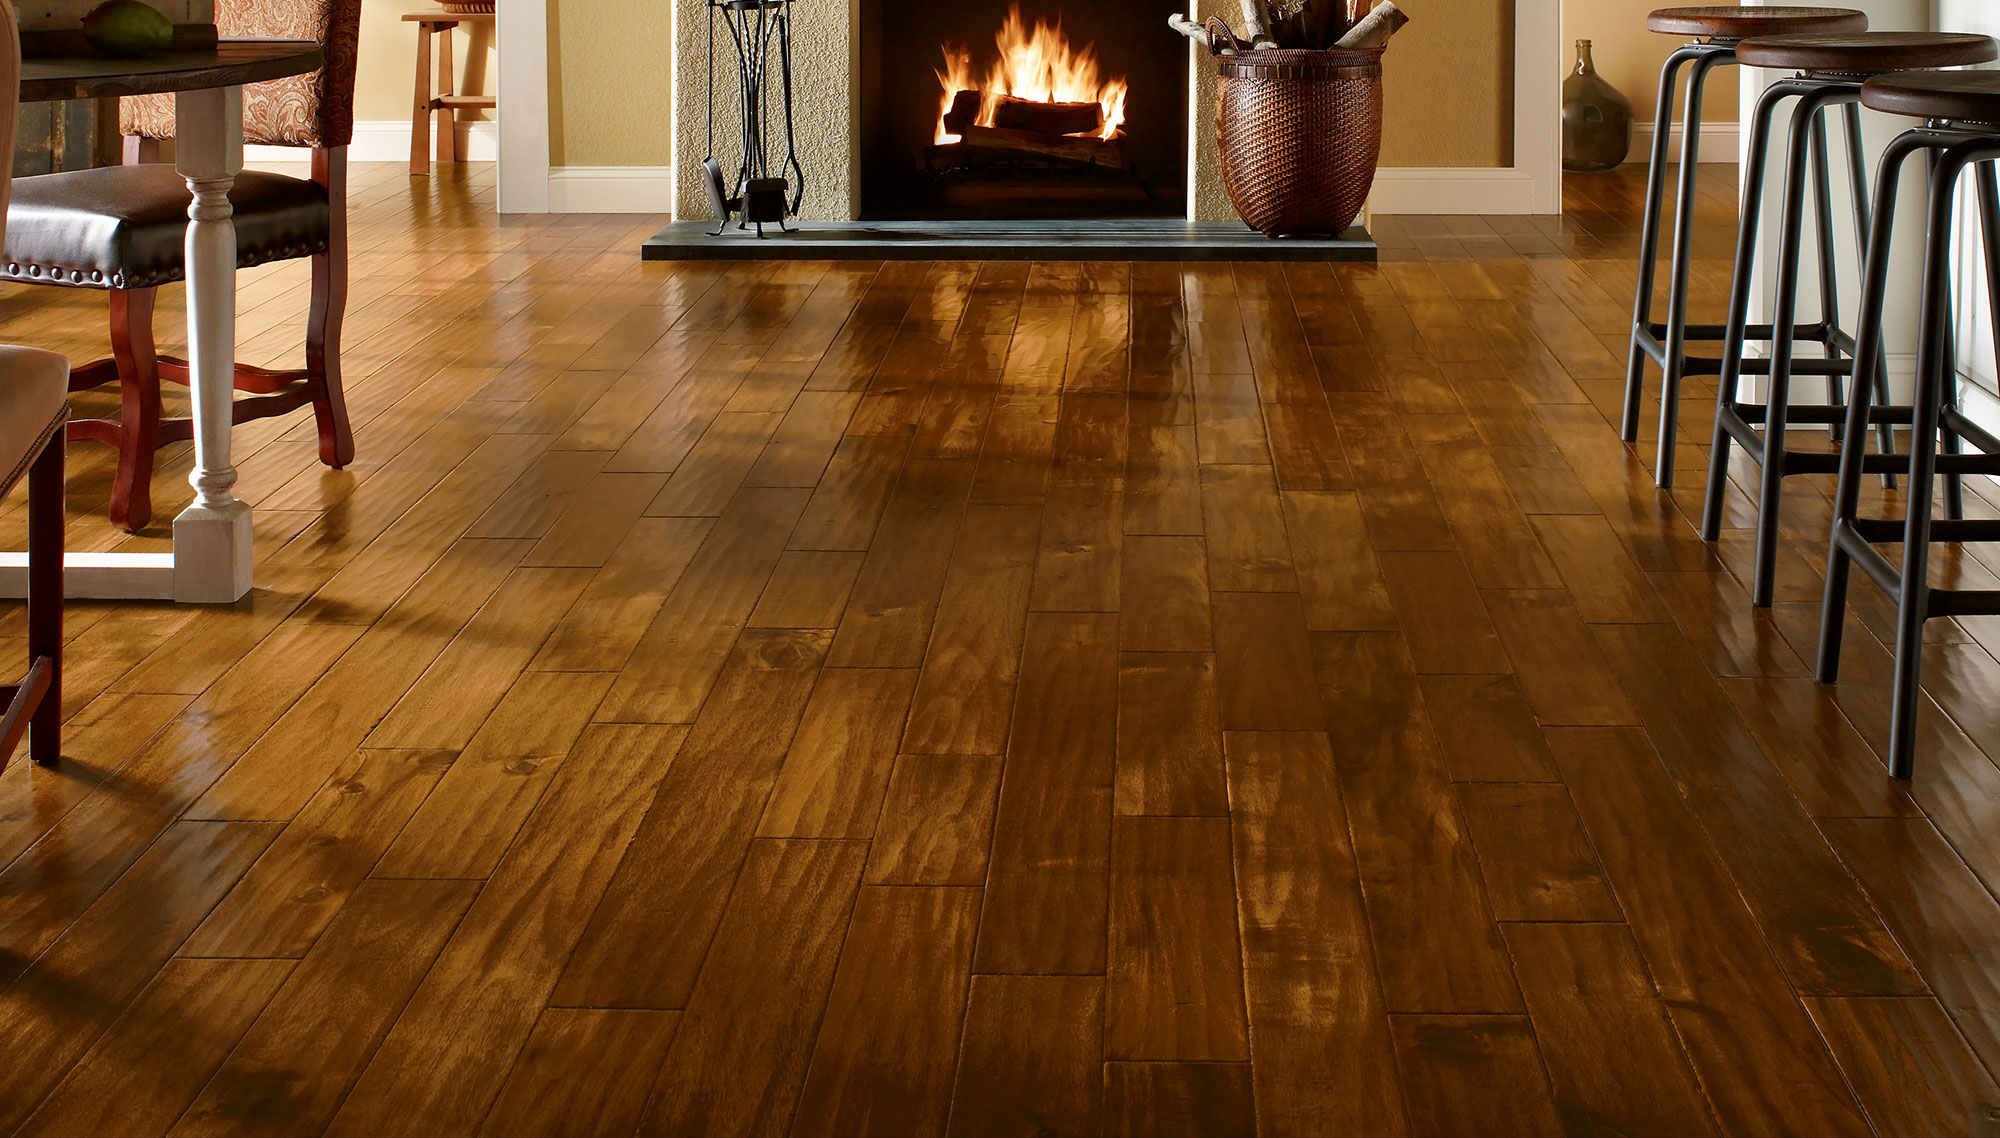 adhogg_builder_hardwood_floor_refinishing-2